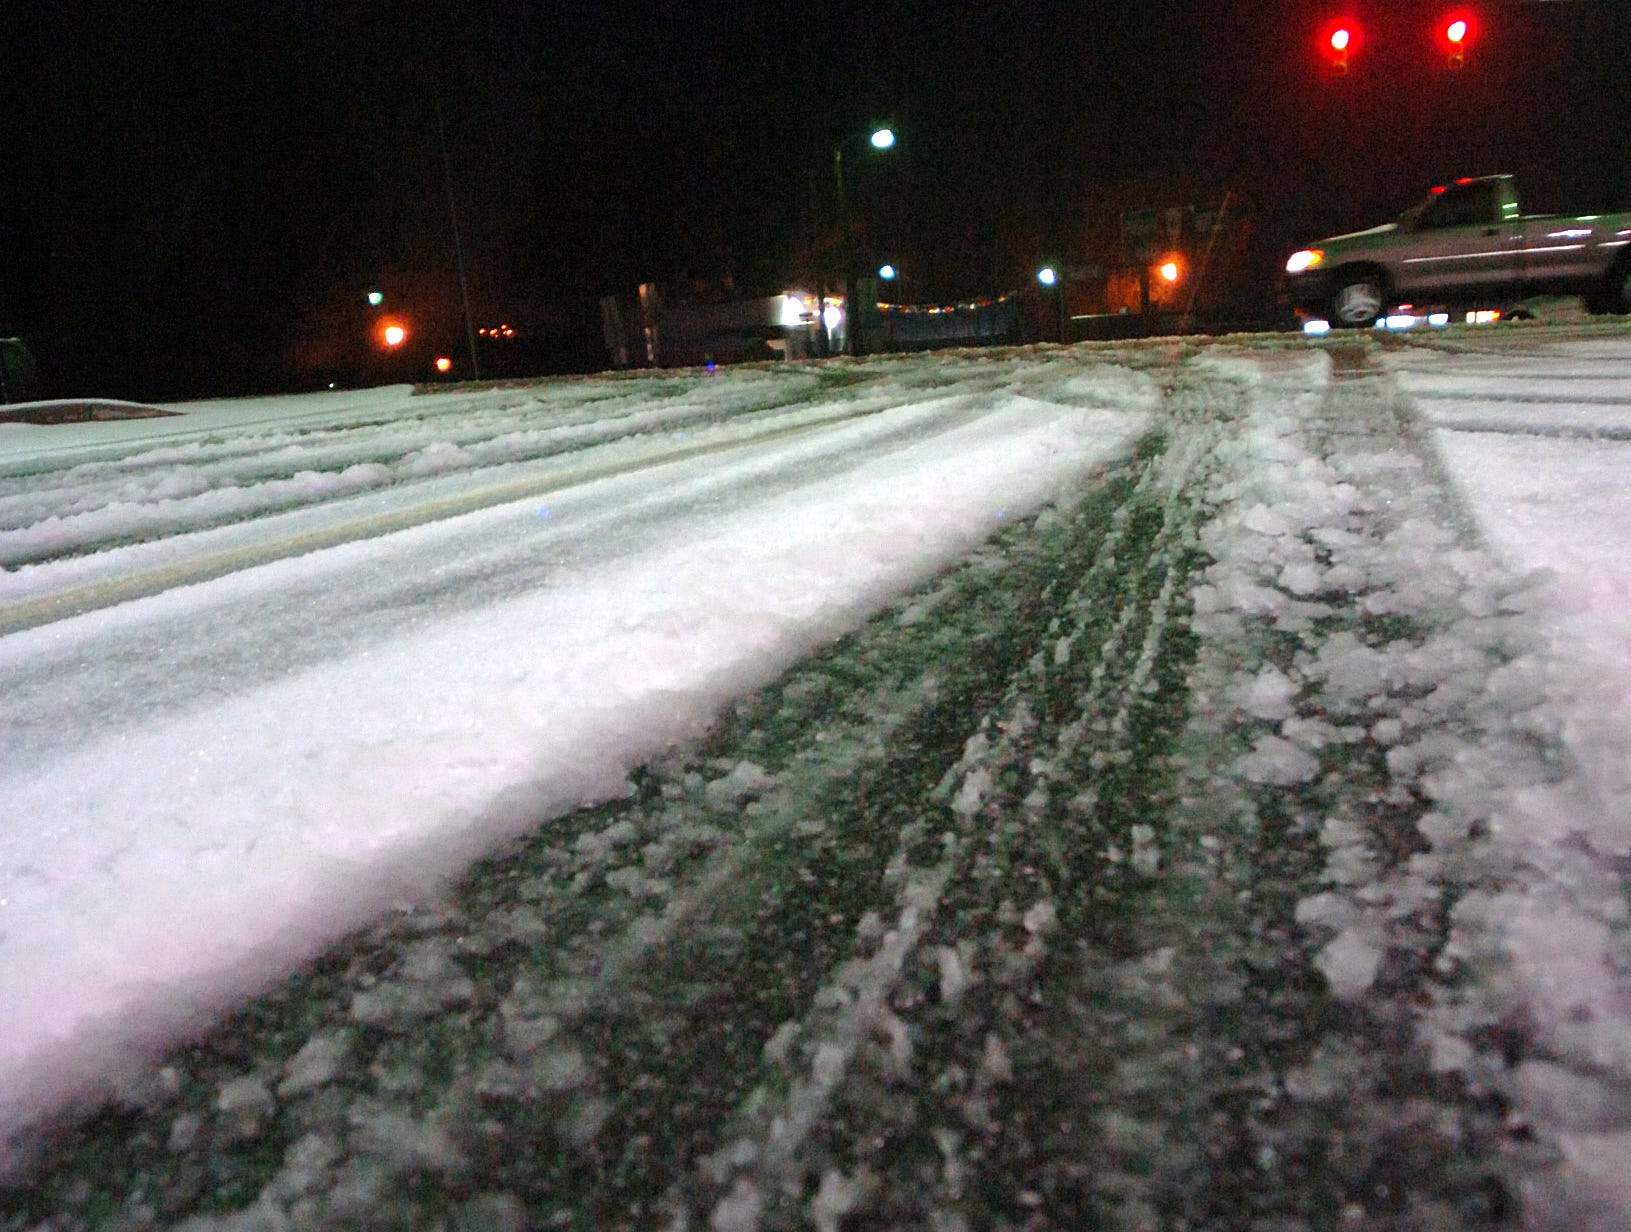 Snow on the roads in Belton early Thursday, February 1, 2007.